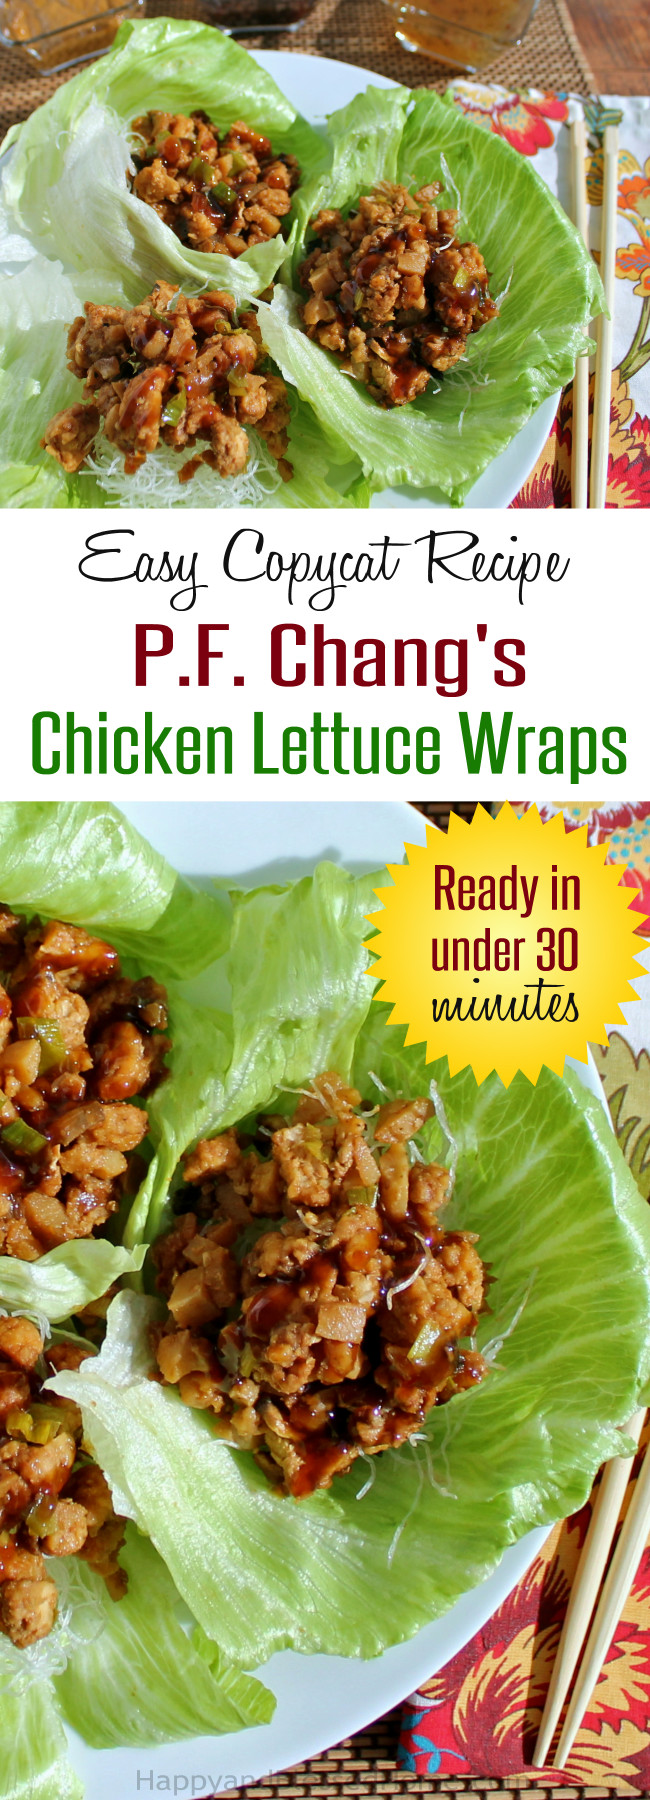 Easy Copycat Recipe for PF Chang's Chicken Lettuce Wraps Ready in under 30 Minutes by HappyandBlessedHome.com